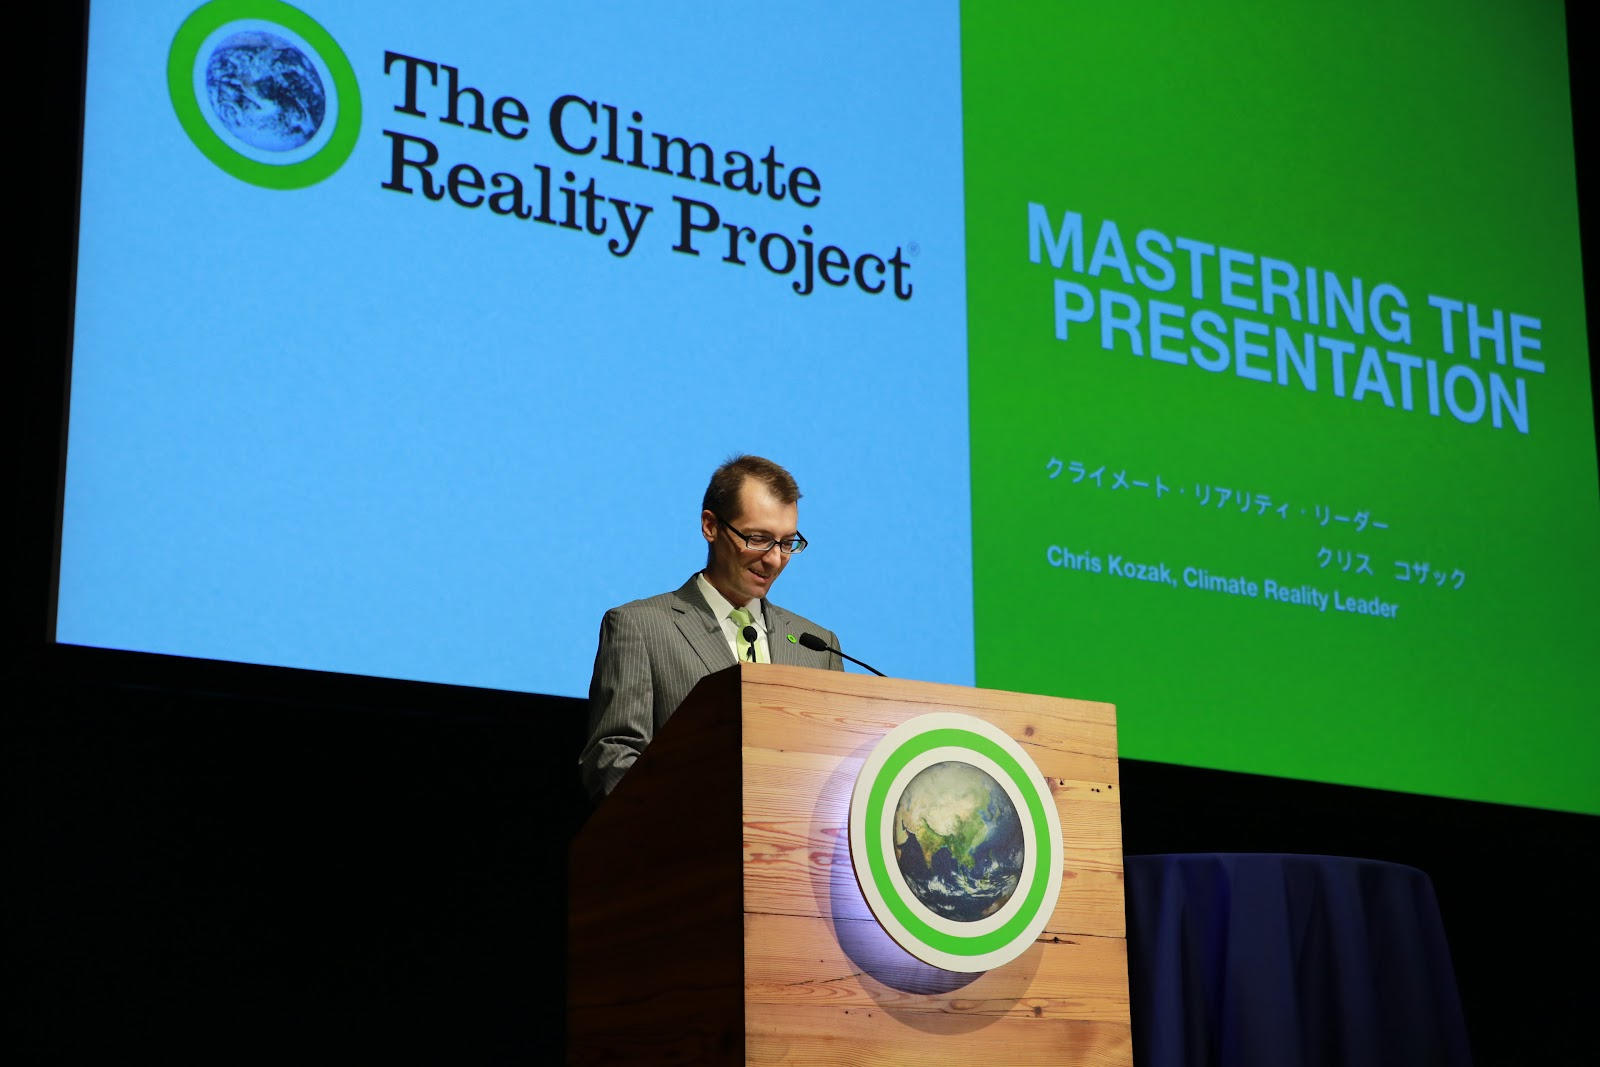 """Chris Kozak speaking at the 2019 Tokyo Climate reality Leadership Corps Training. The session was titled """"Mastering the Presentation."""""""